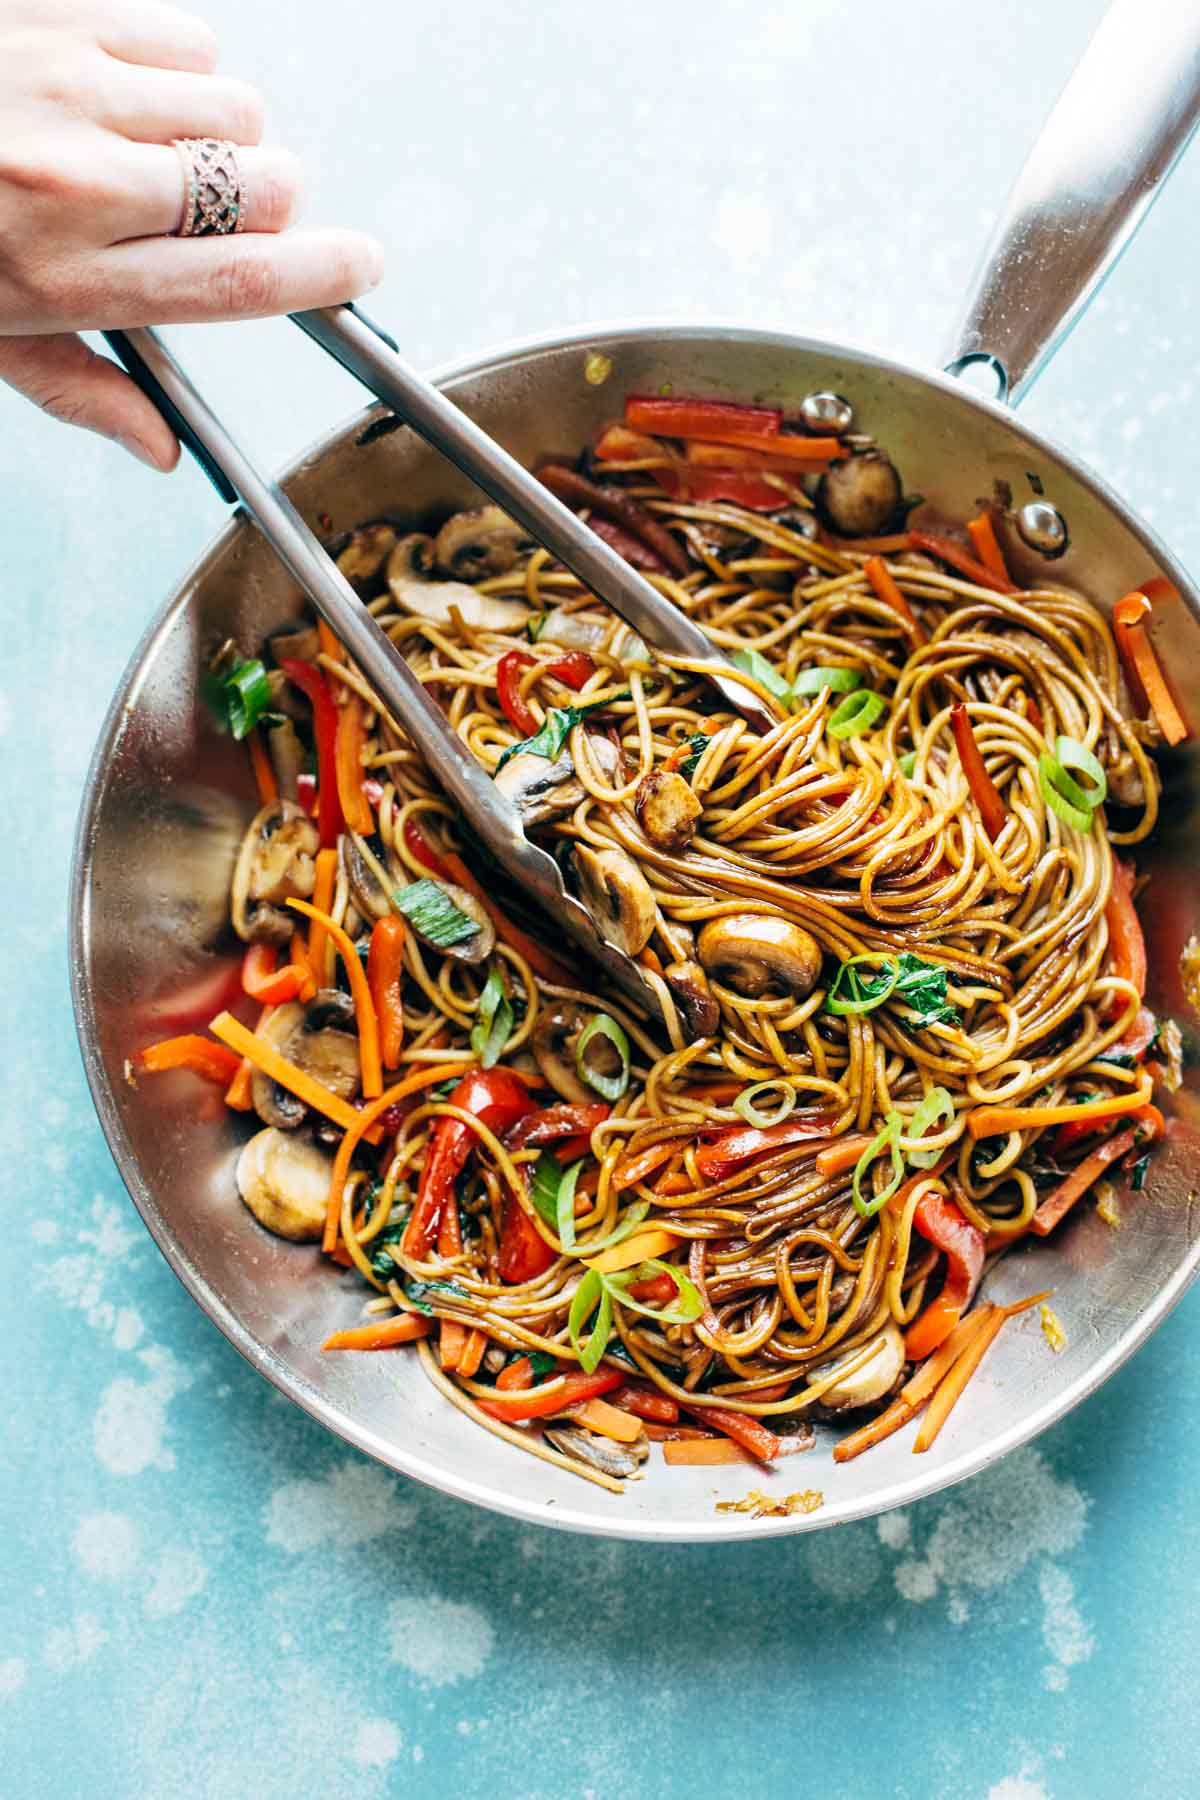 birds eye view of a large silver cooking pan containing fifteen minute lo mein using beans and pulses with tongs inside stirring the noodles